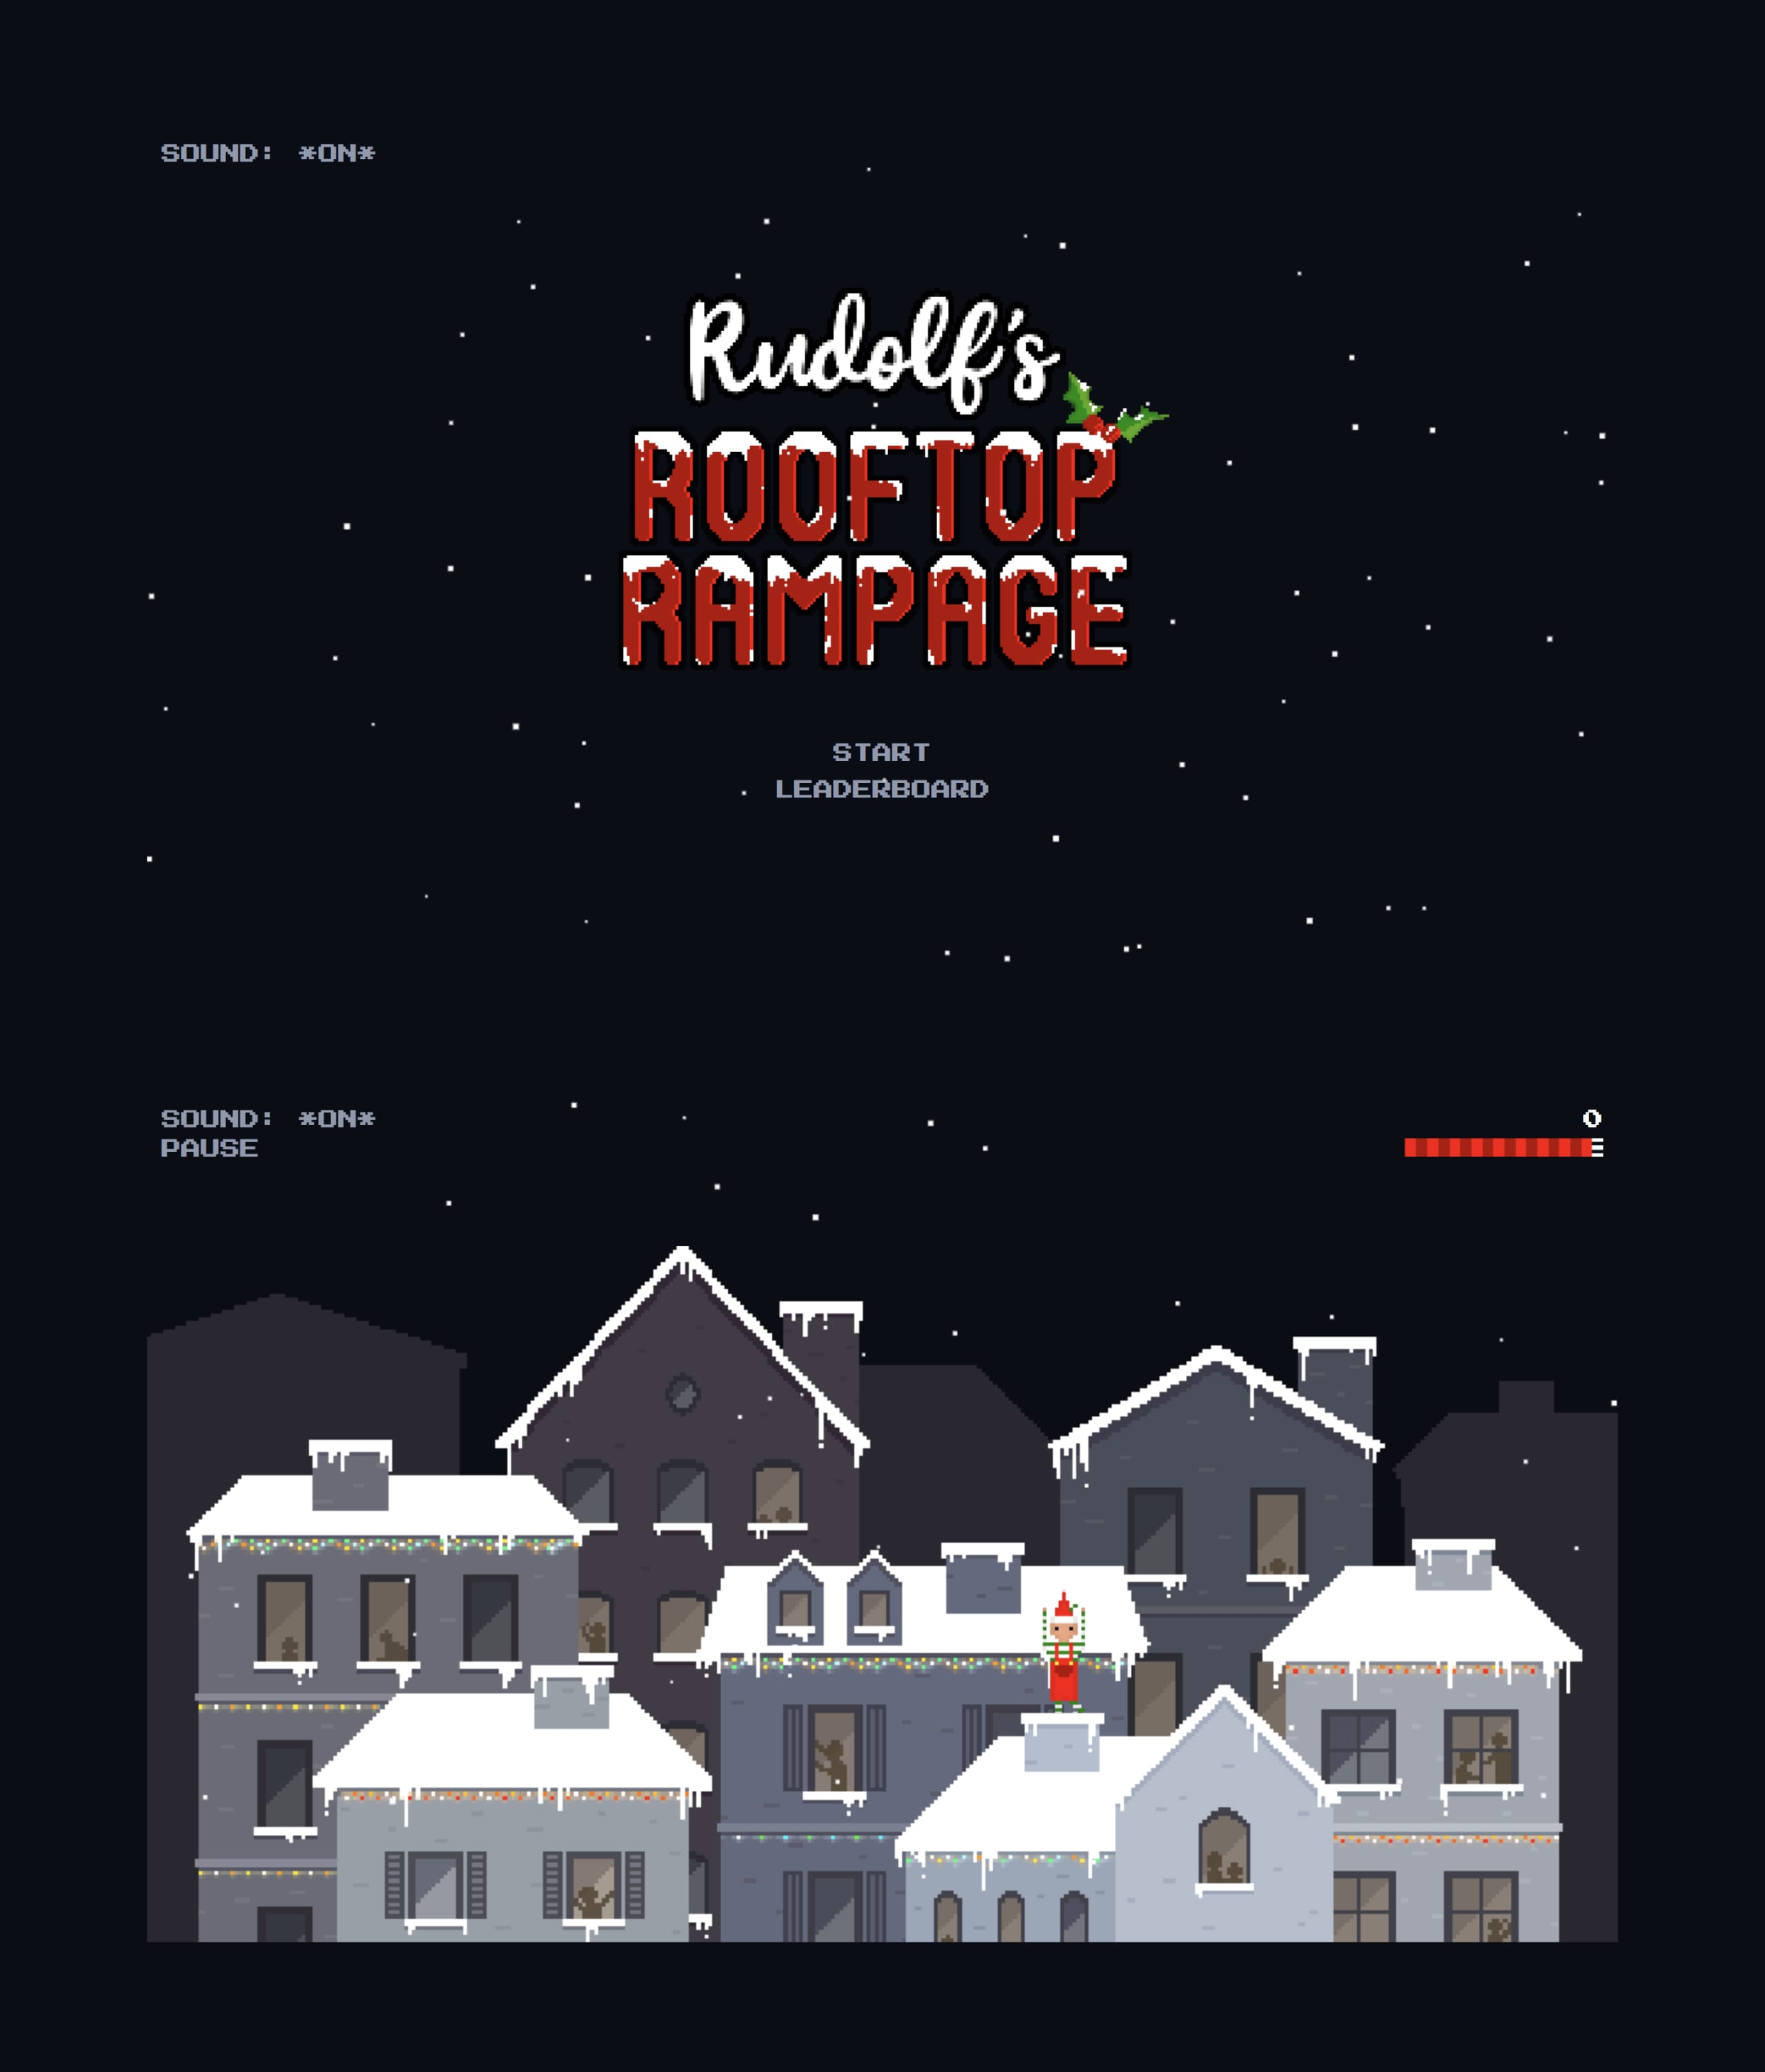 Rudolf's Rooftop Rampage Website Screenshot